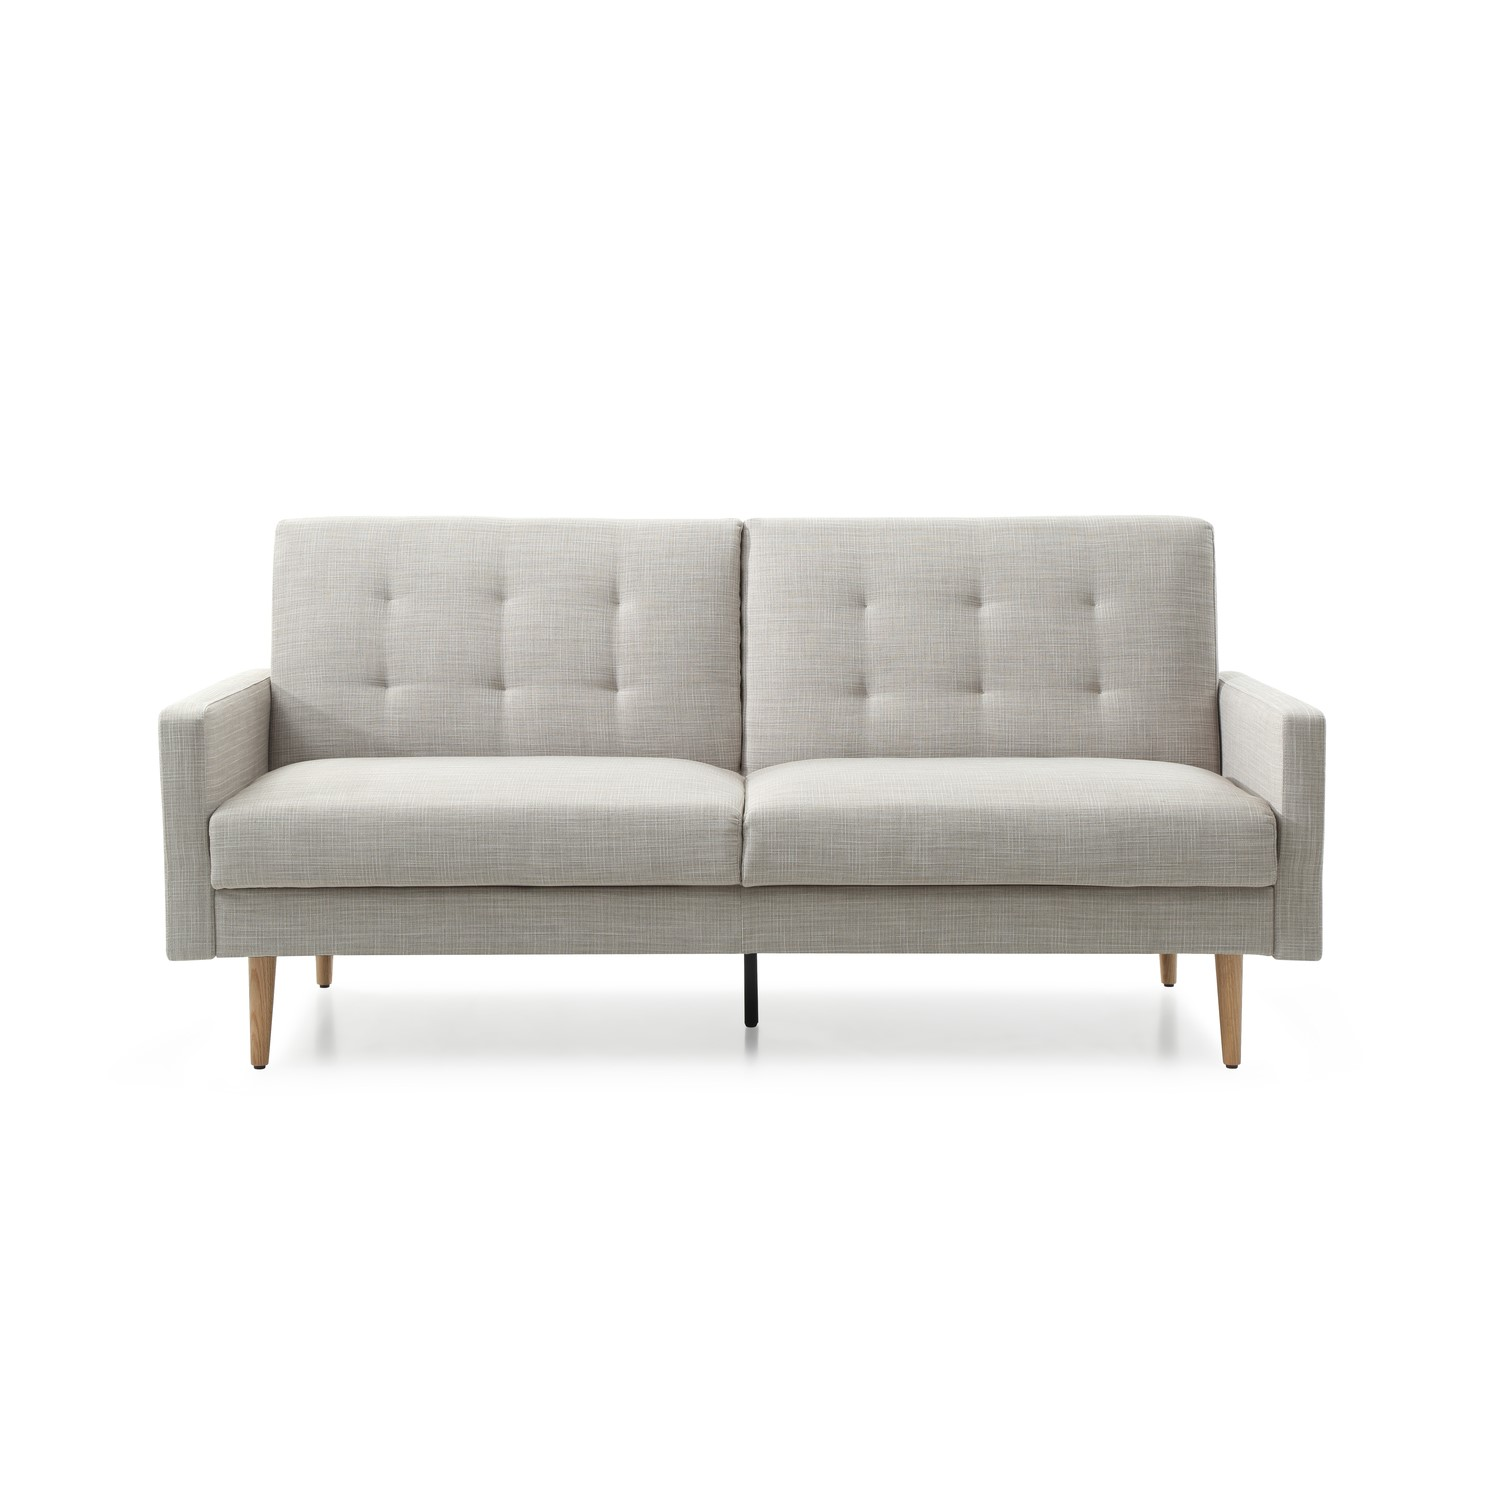 Surprising Kyoto Futons Sacha Clic Clac Sofa Bed Pdpeps Interior Chair Design Pdpepsorg